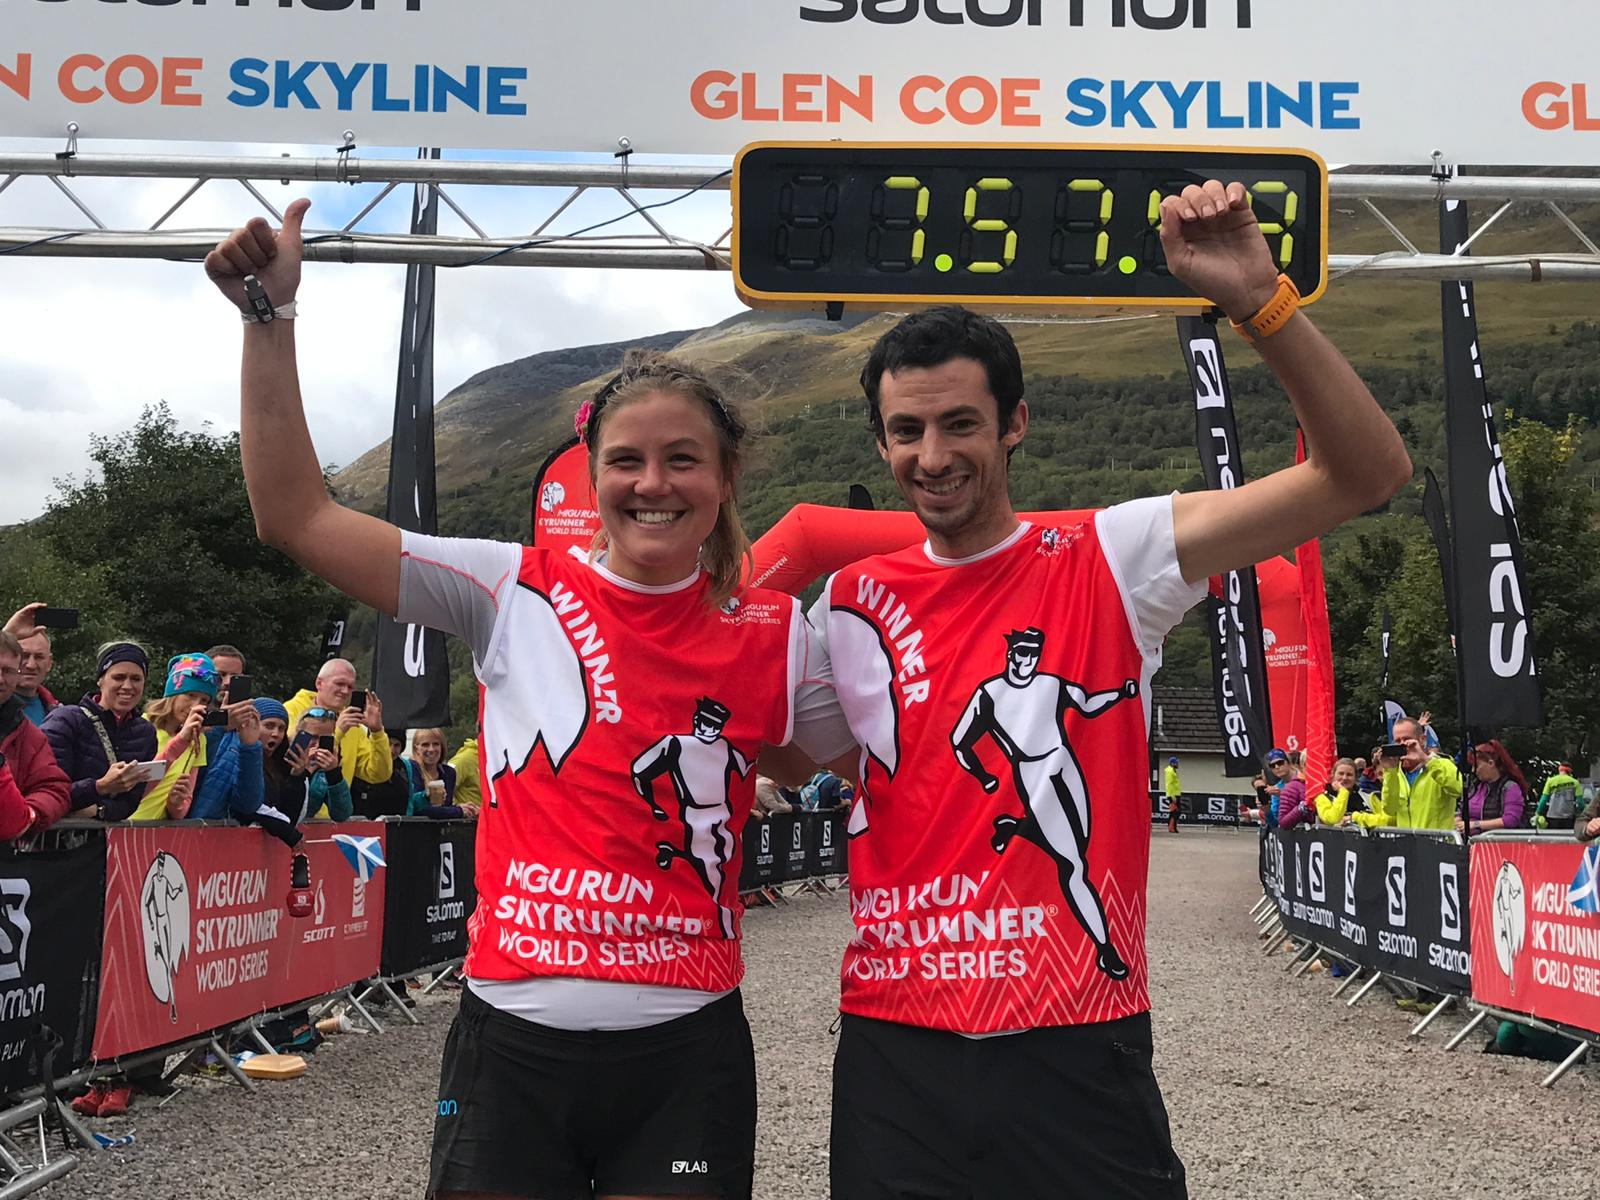 Emelie Forberg and Kilian Jornet in the Migu Run Skyrunner World Series Winner's bib